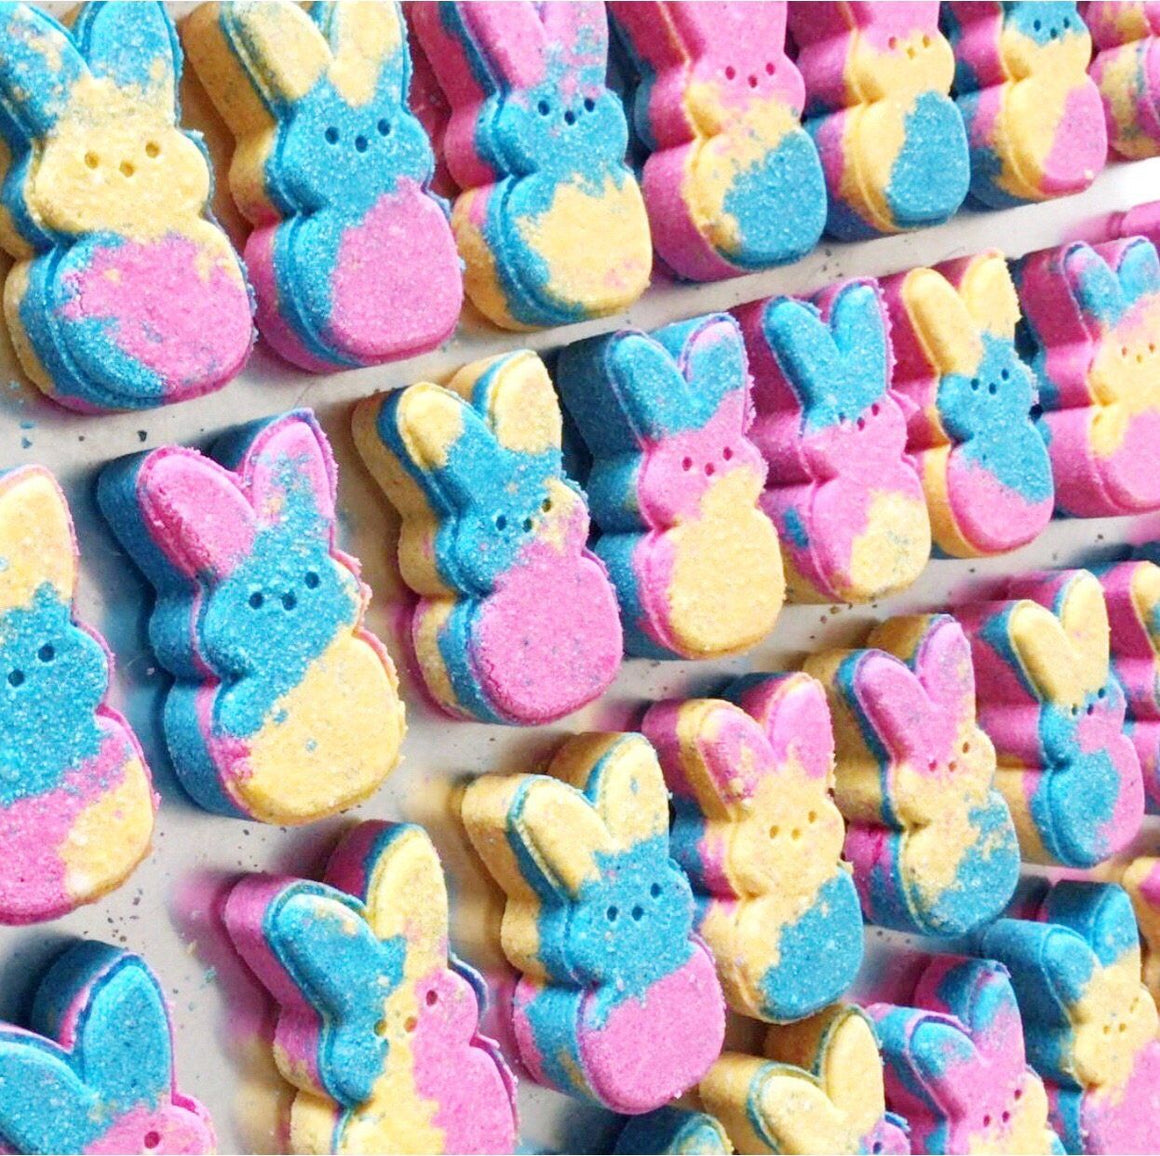 BATH FIZZY - BUNNY VIBRANT, BATH, Crafted Bath - Bon + Co. Party Studio